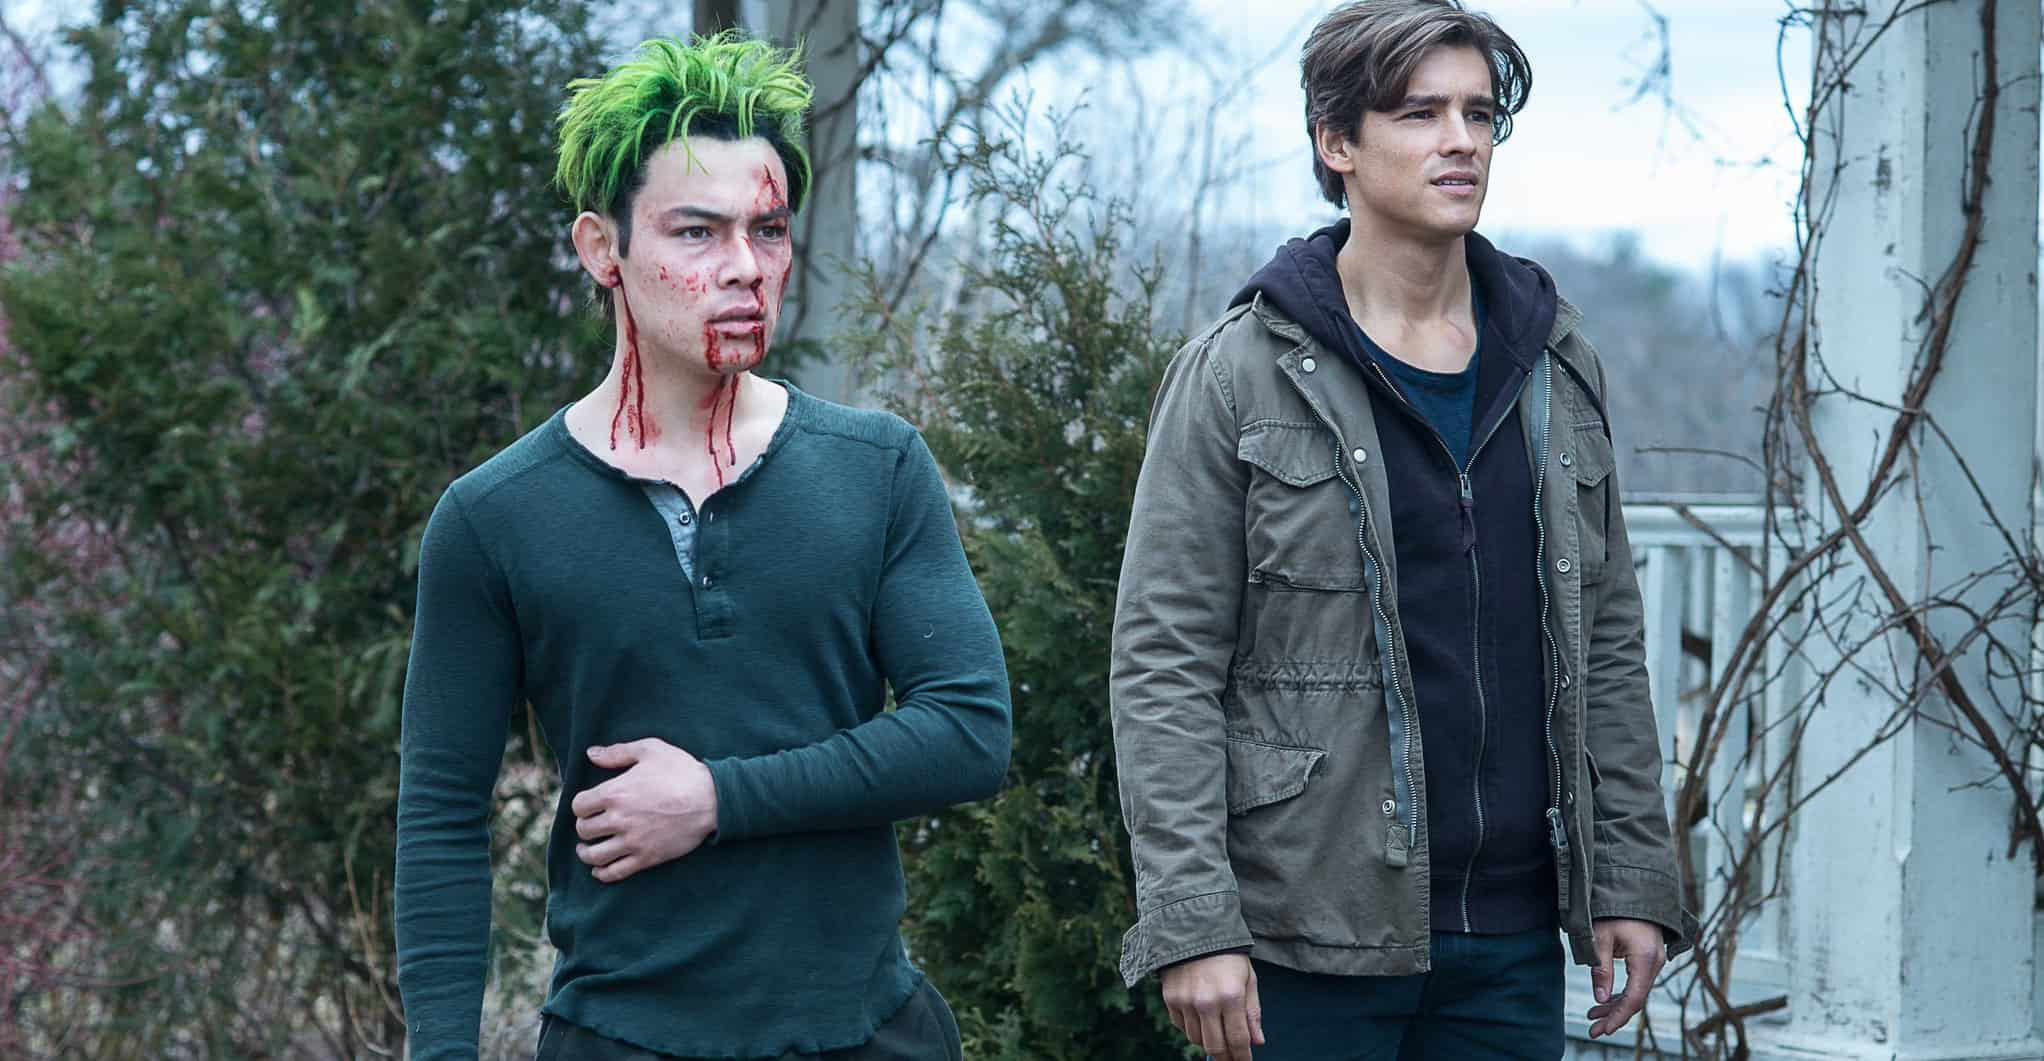 Titans season 2 full trailer